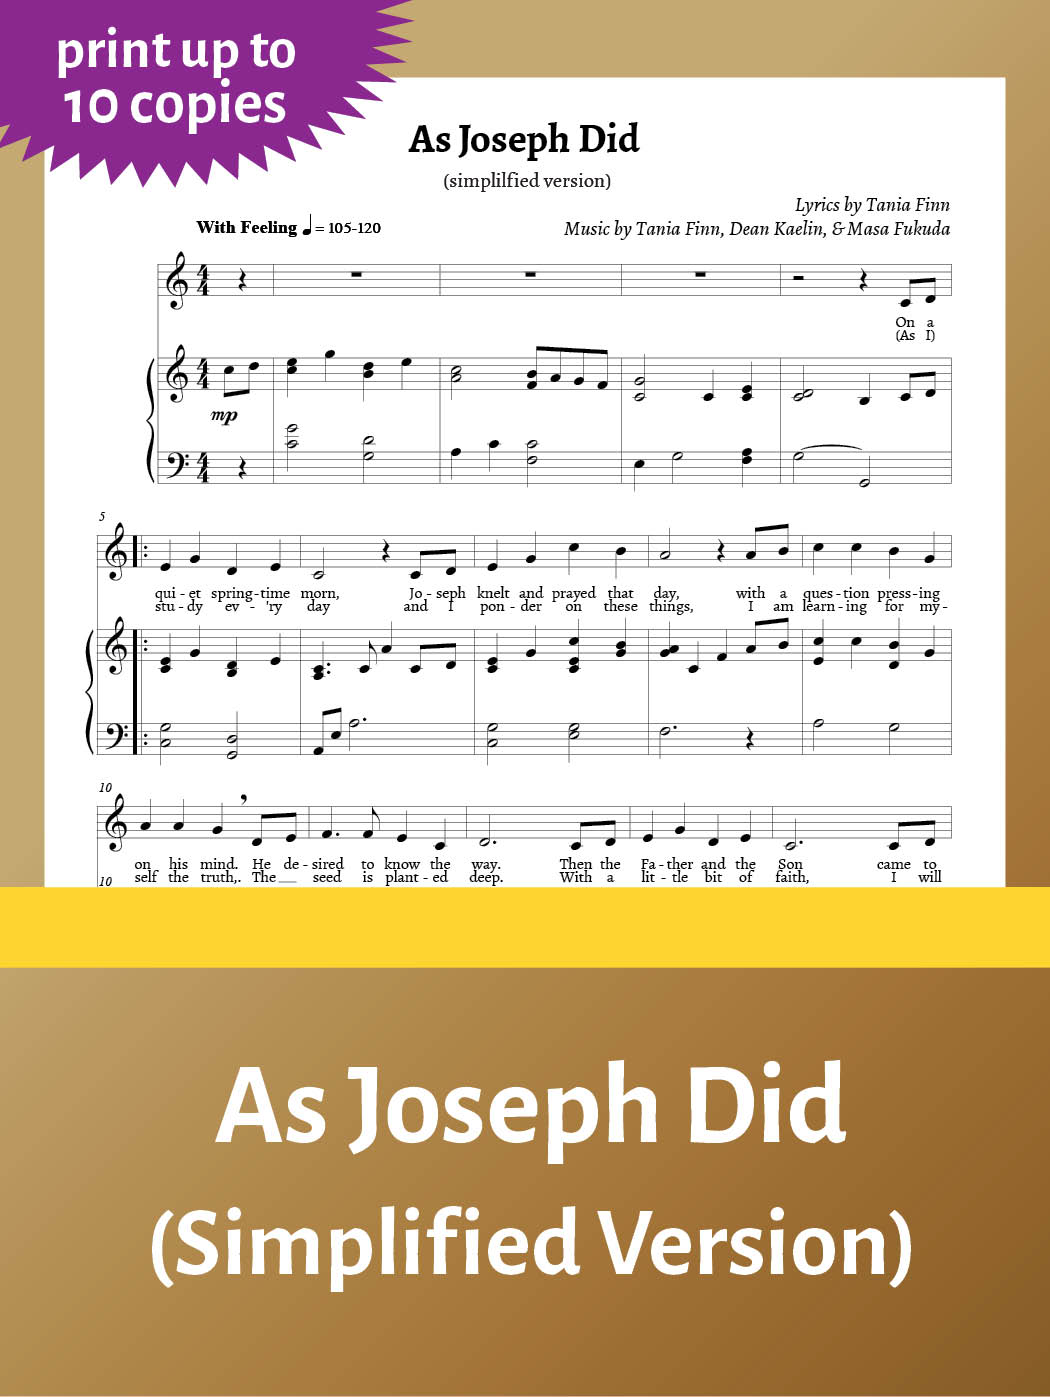 As Joseph Did – Sheet Music – simplified – up to 10 copies